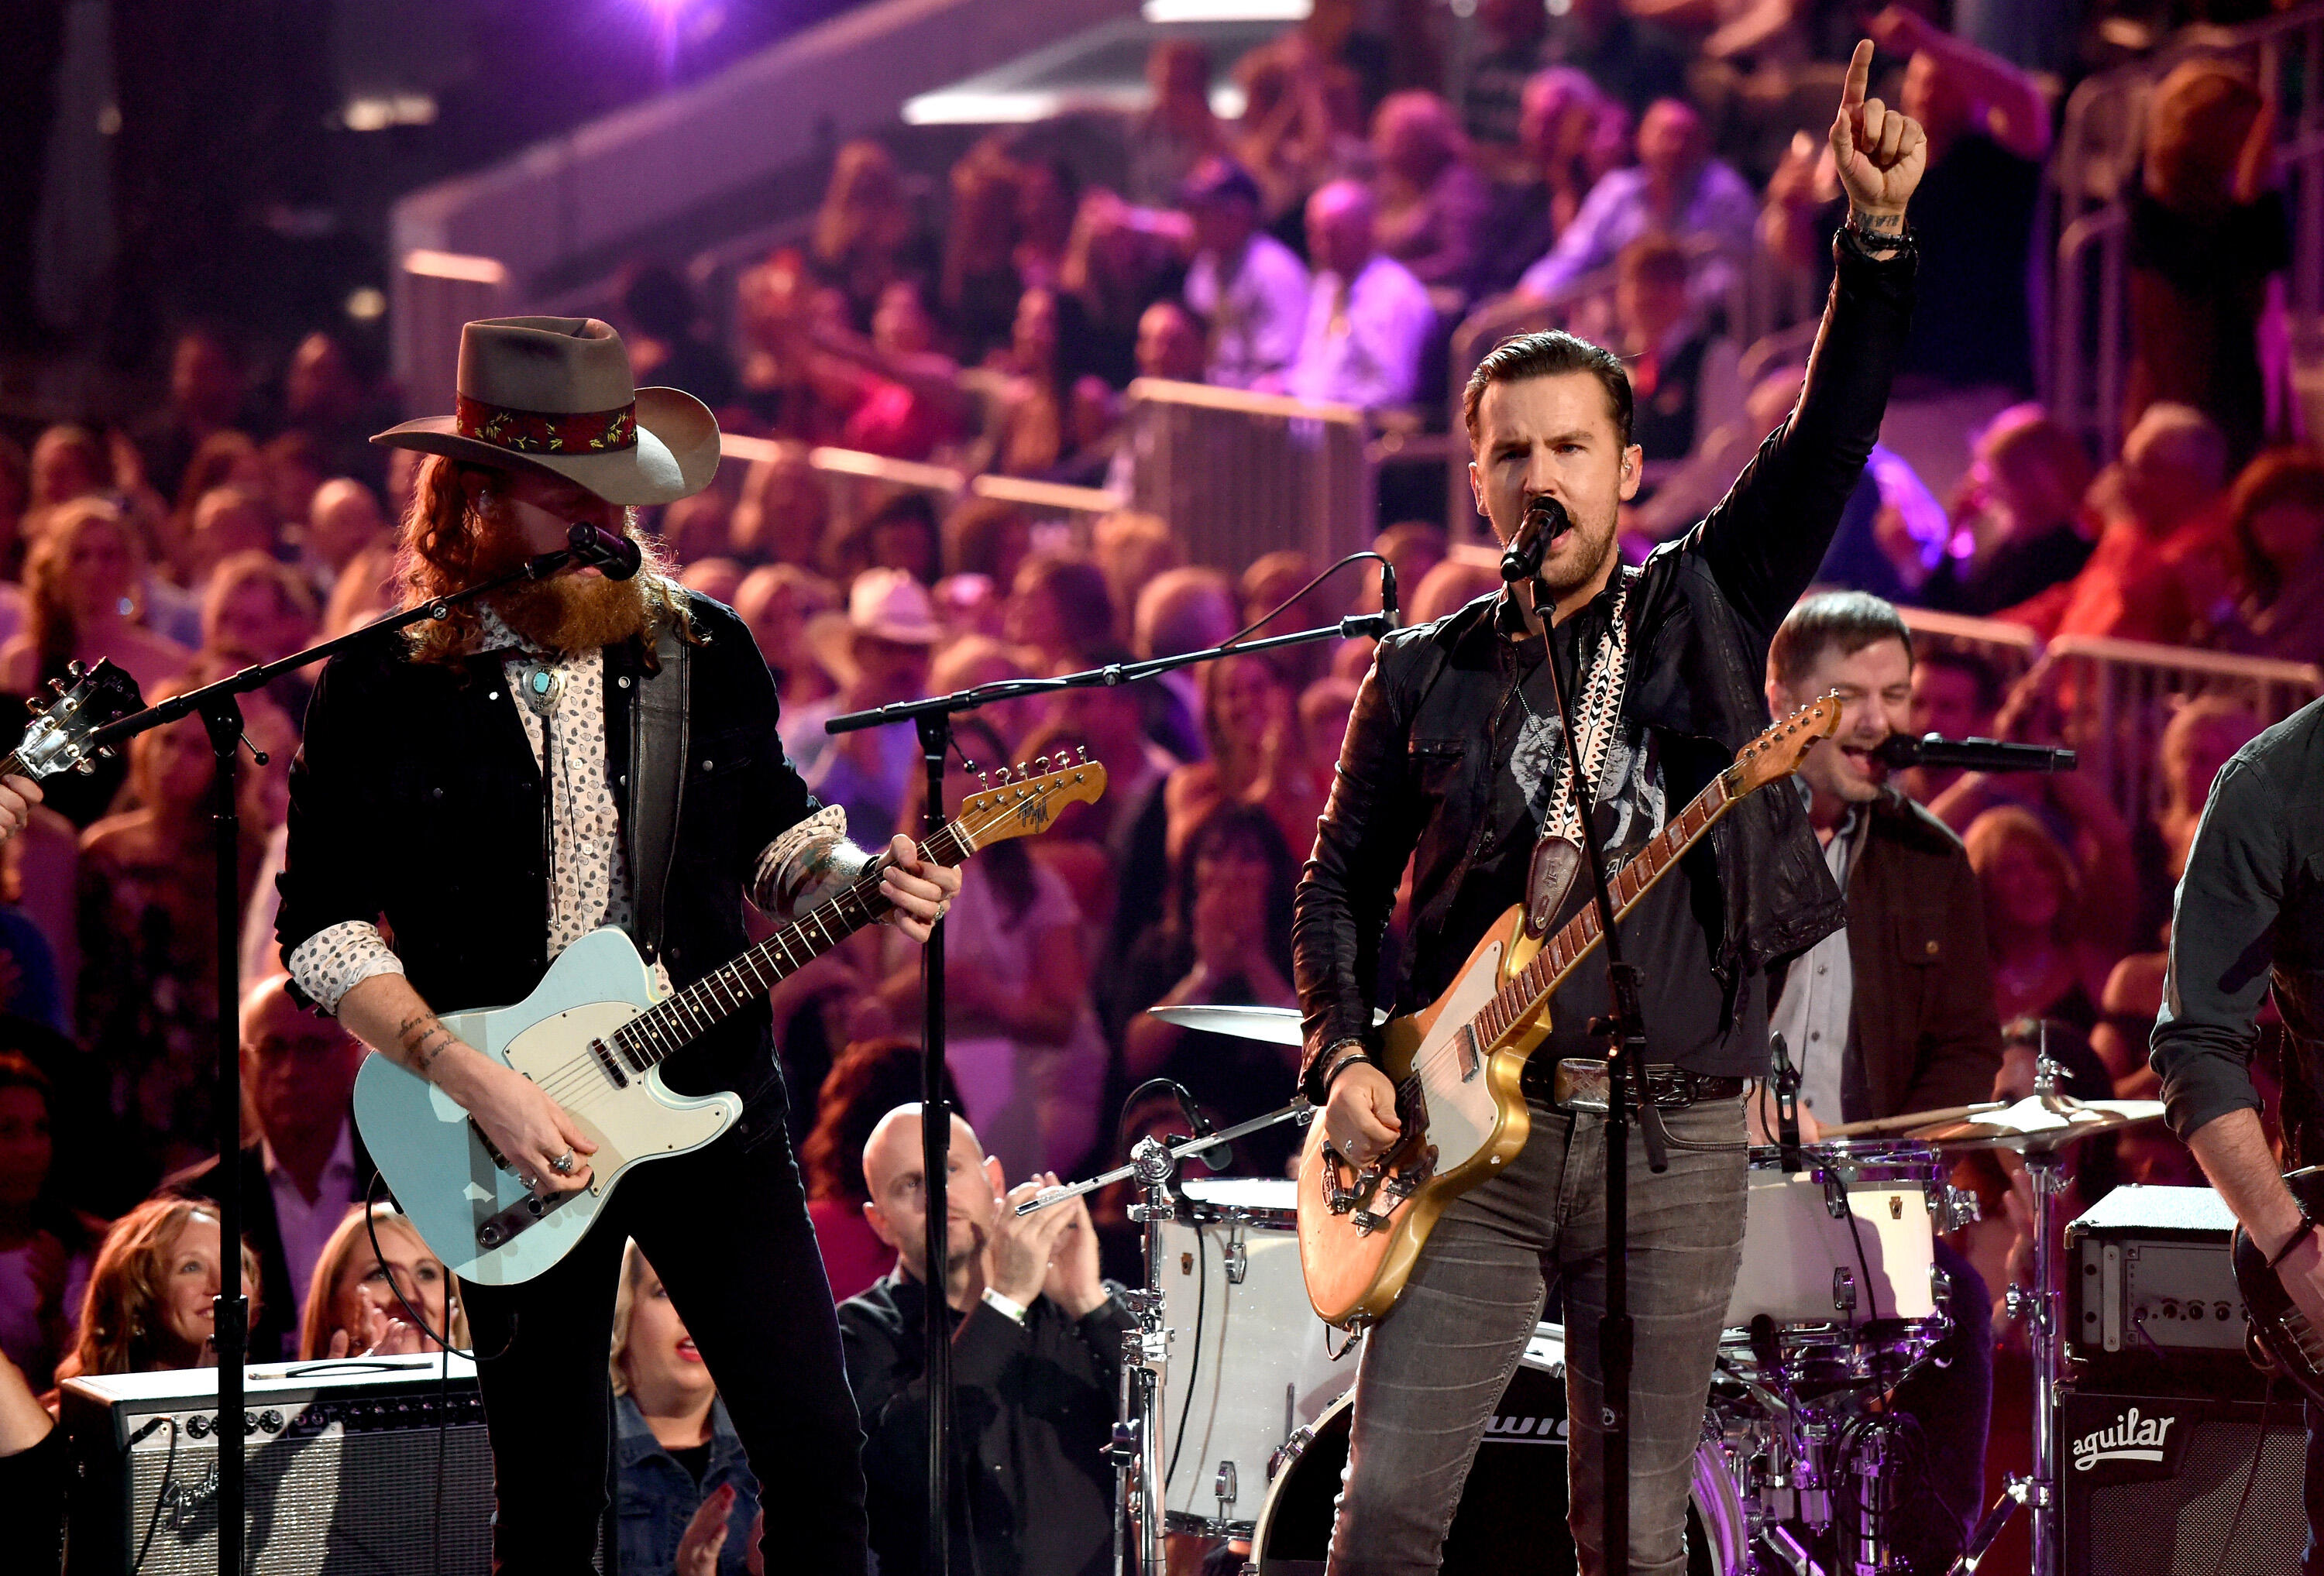 LAS VEGAS, NV - APRIL 02:  Musicians John Osborne (L) and T.J. Osborne of the music group Brothers Osborne perform onstage during the 52nd Academy Of Country Music Awards at T-Mobile Arena on April 2, 2017 in Las Vegas, Nevada.  (Photo by Ethan Miller/Get